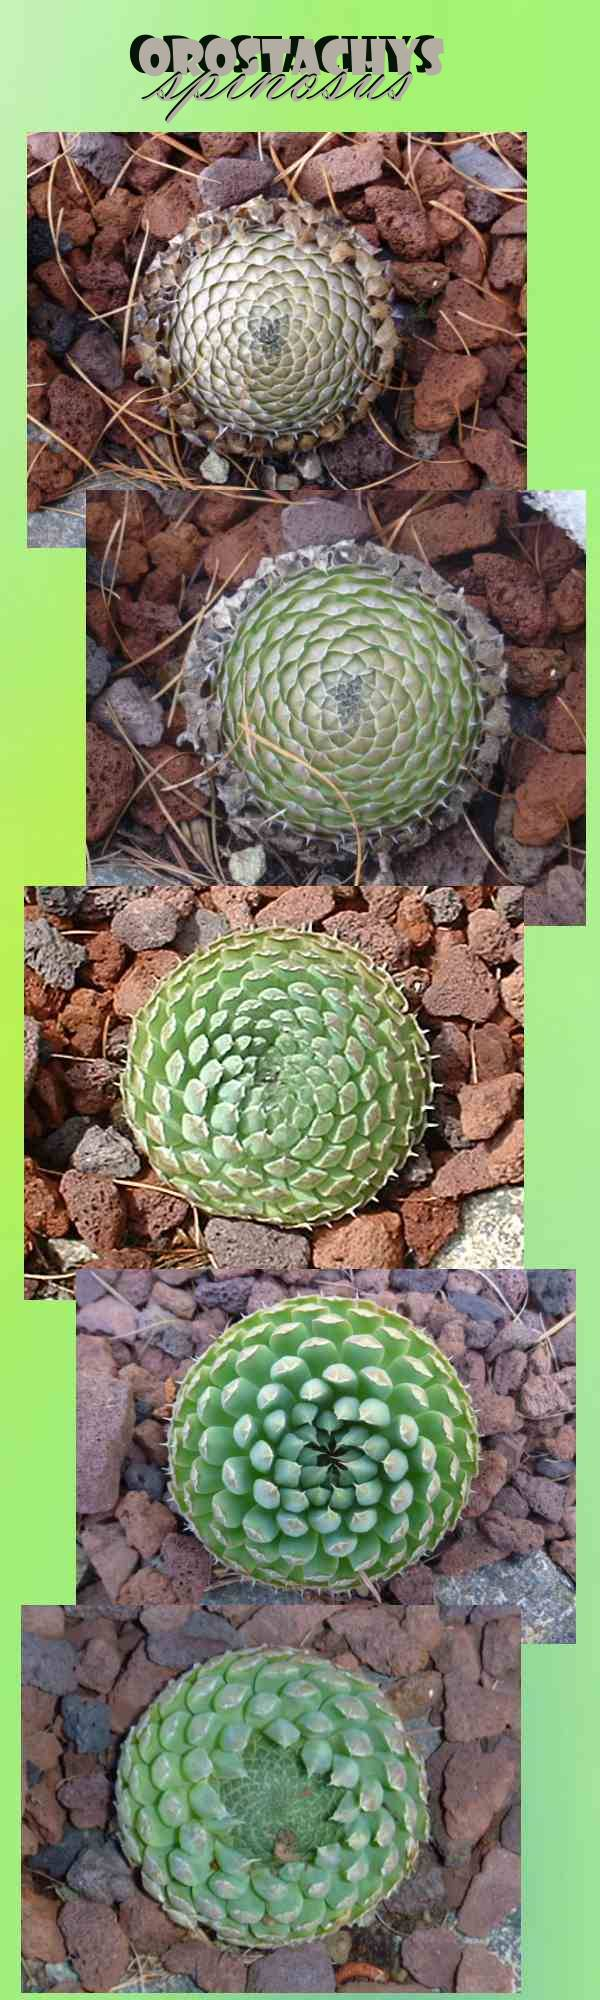 Orostachys spinosus life cycle